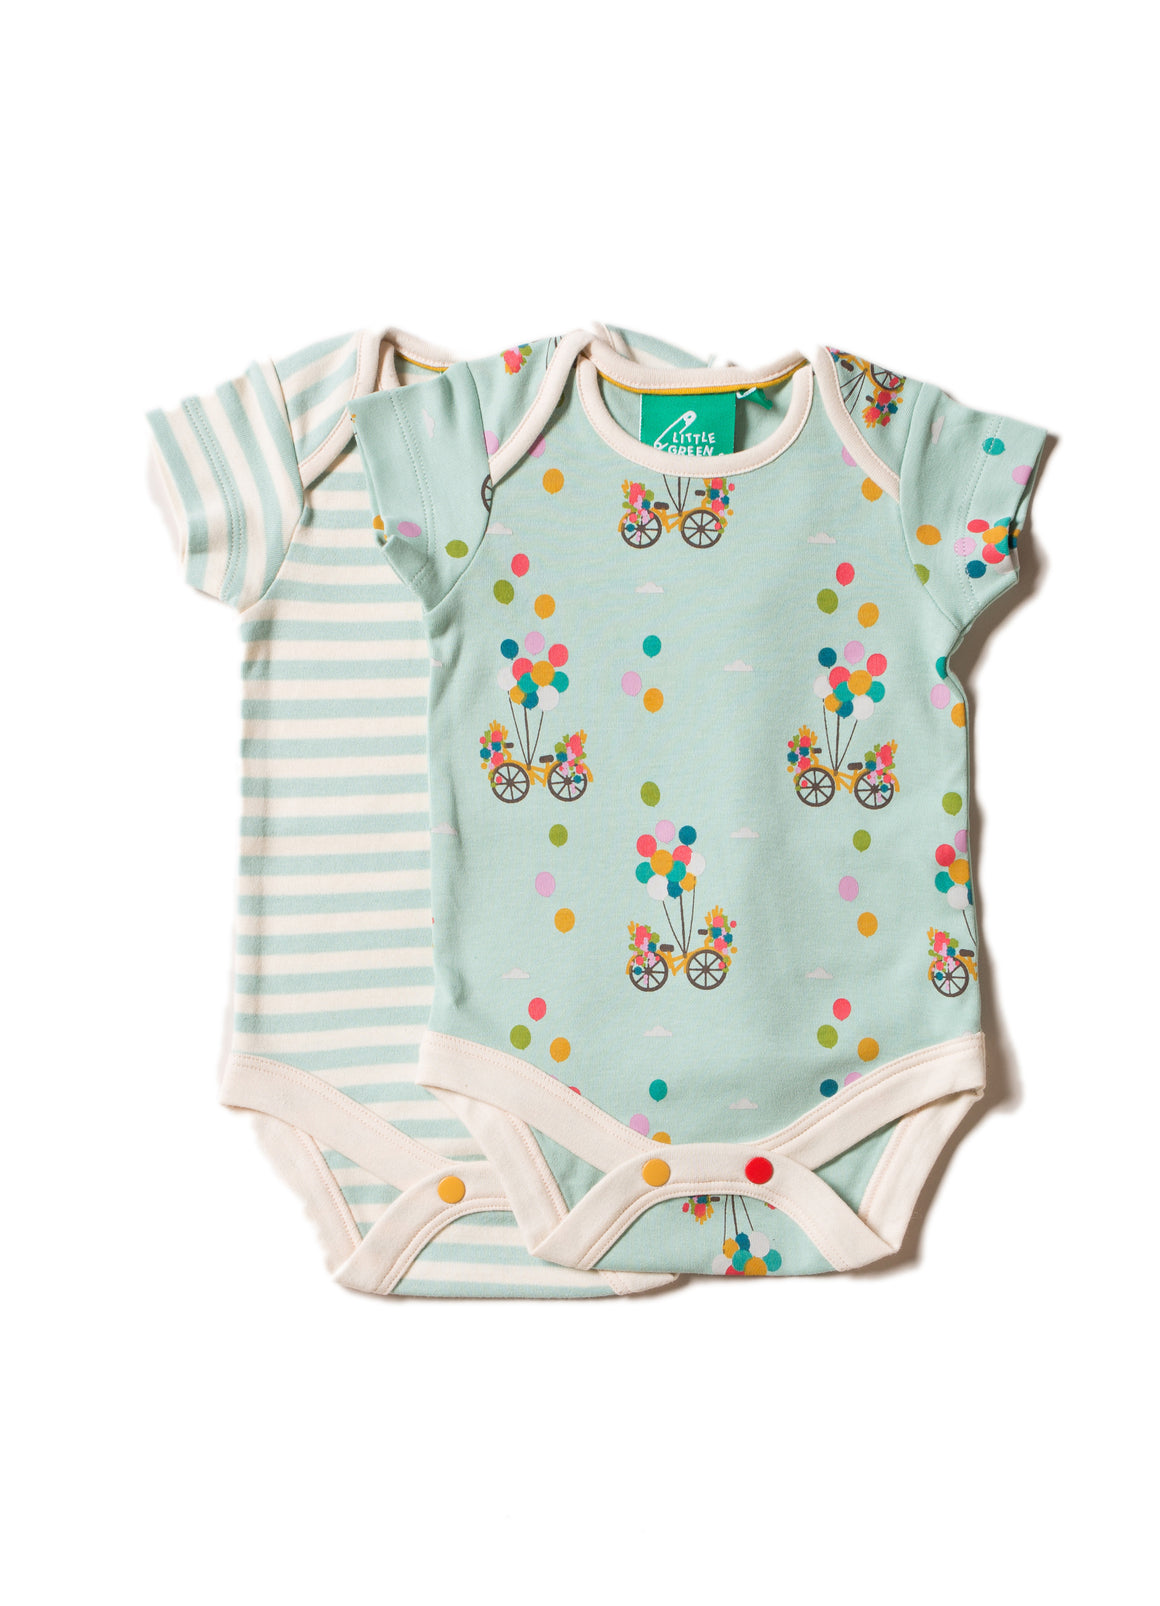 Flying High Baby Body Set